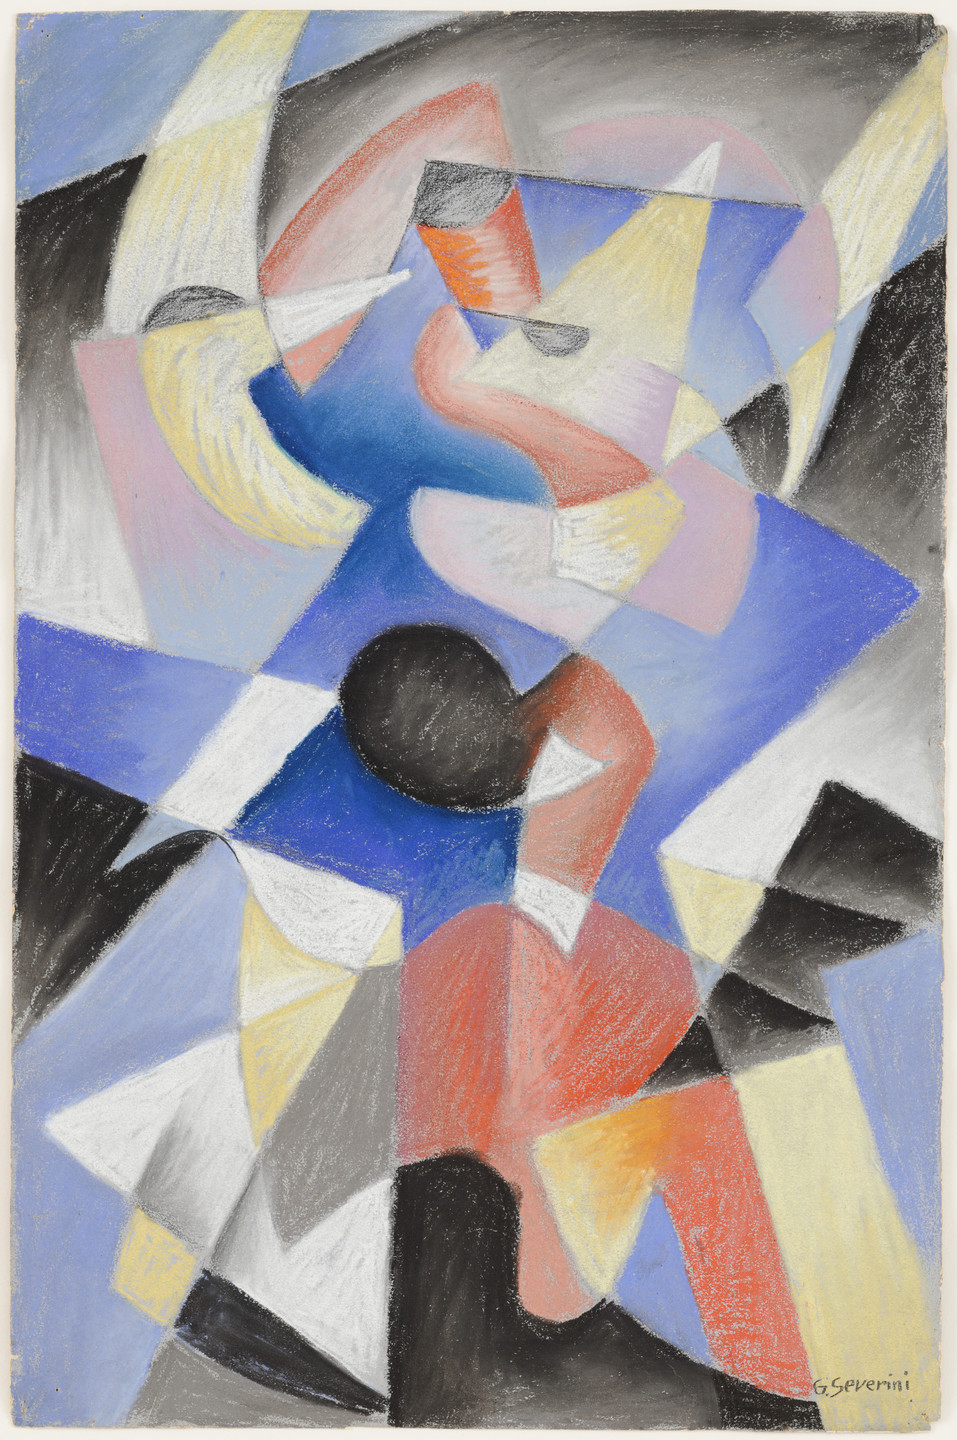 Gino Severini. Dancer. 1912